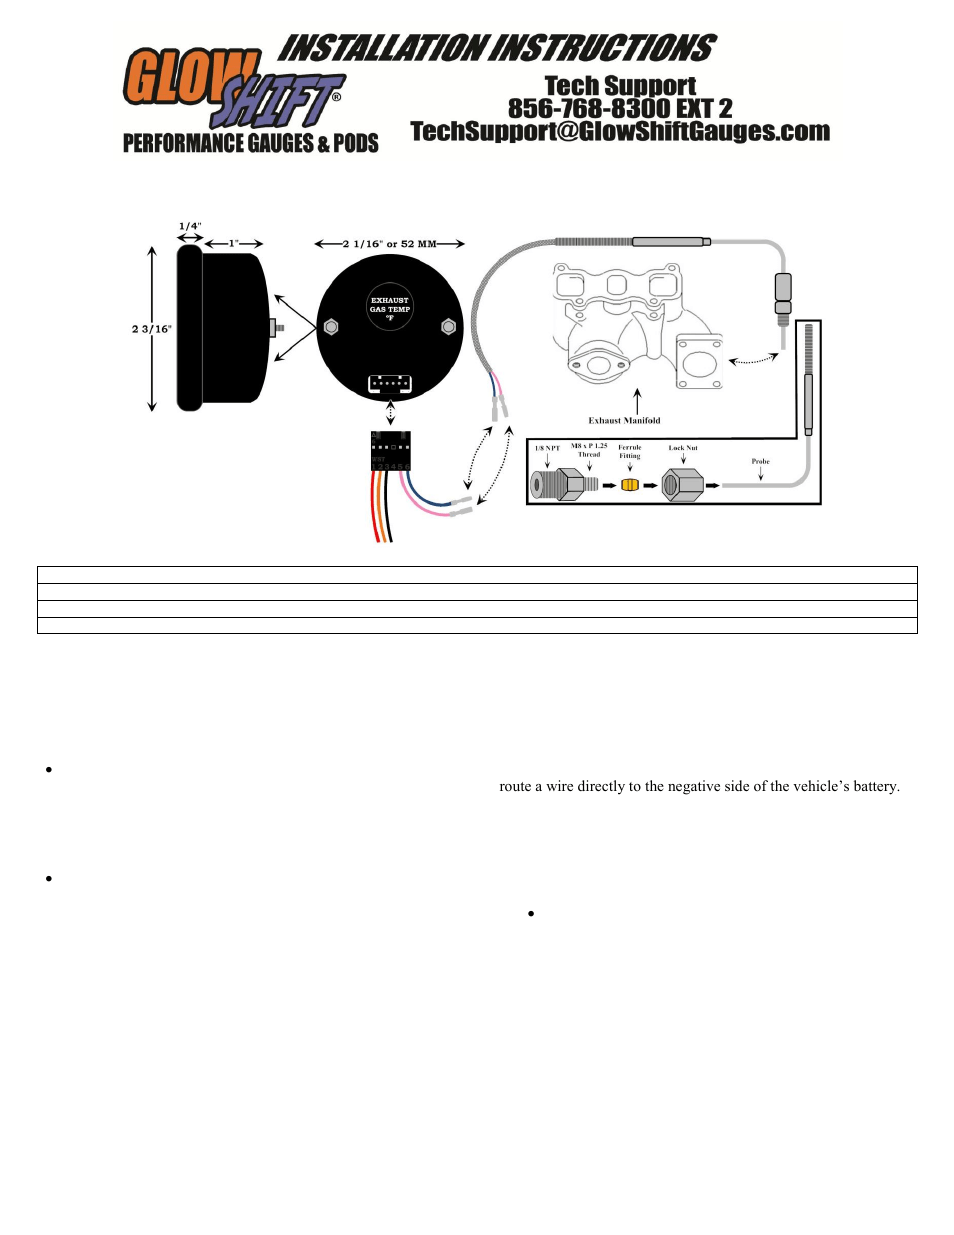 glowshift digital series pyrometer egt gauge page1?resize\\\=665%2C861 glowshift gauge wiring diagram system 3 wiring diagrams Electric Speedometer Gauge Wiring Diagram at readyjetset.co